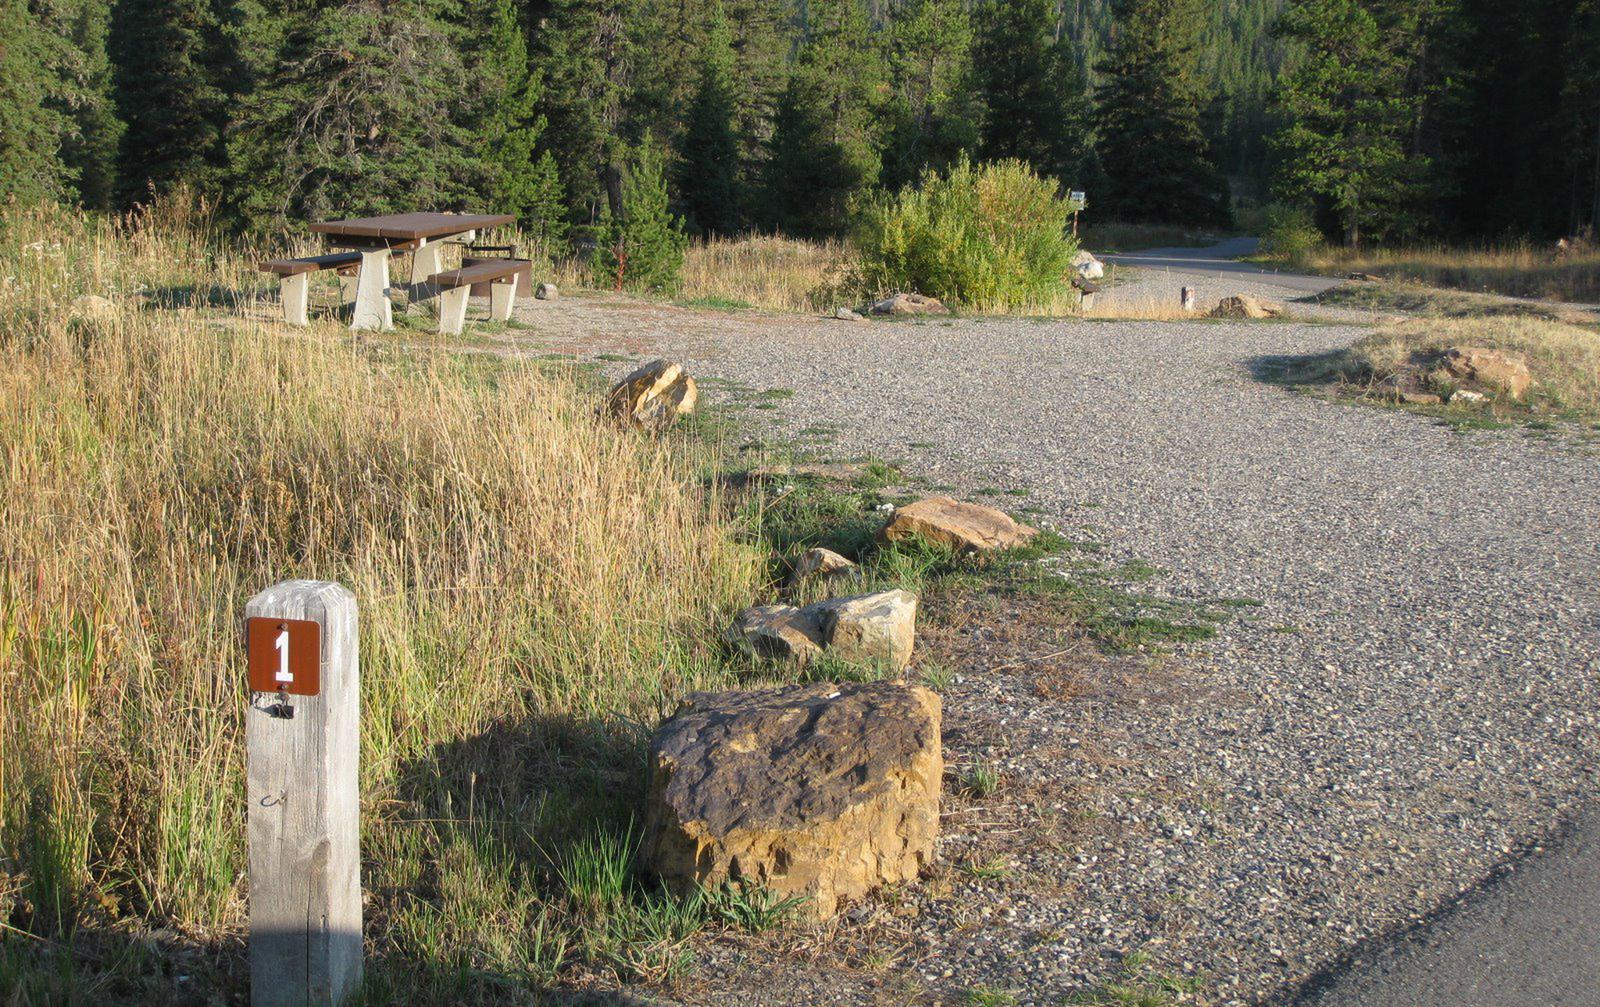 Site 1, campsite surrounded by pine trees, picnic table & fire ringSite 1